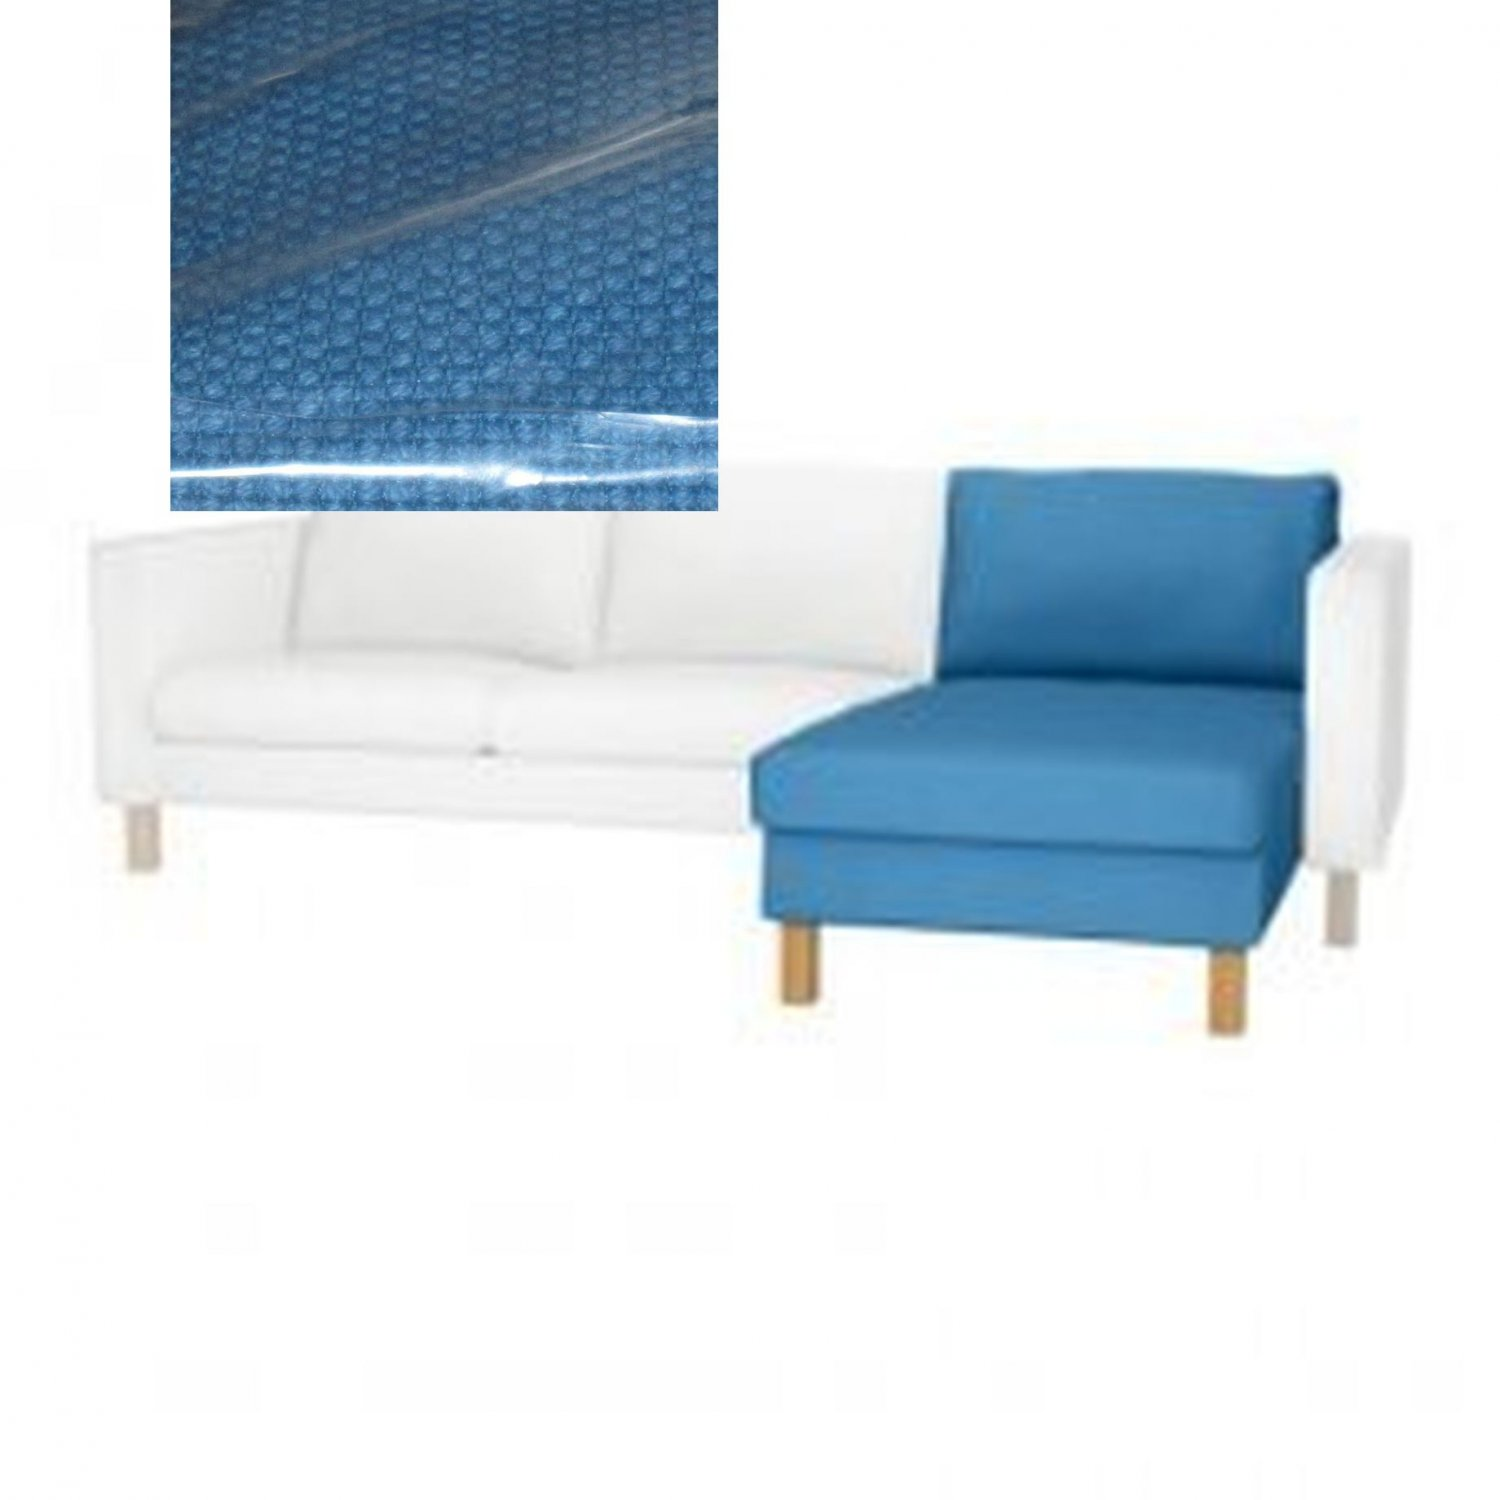 Ikea karlstad slipcover for add on chaise longue korndal blue cover - Ikea chaise stockholm ...